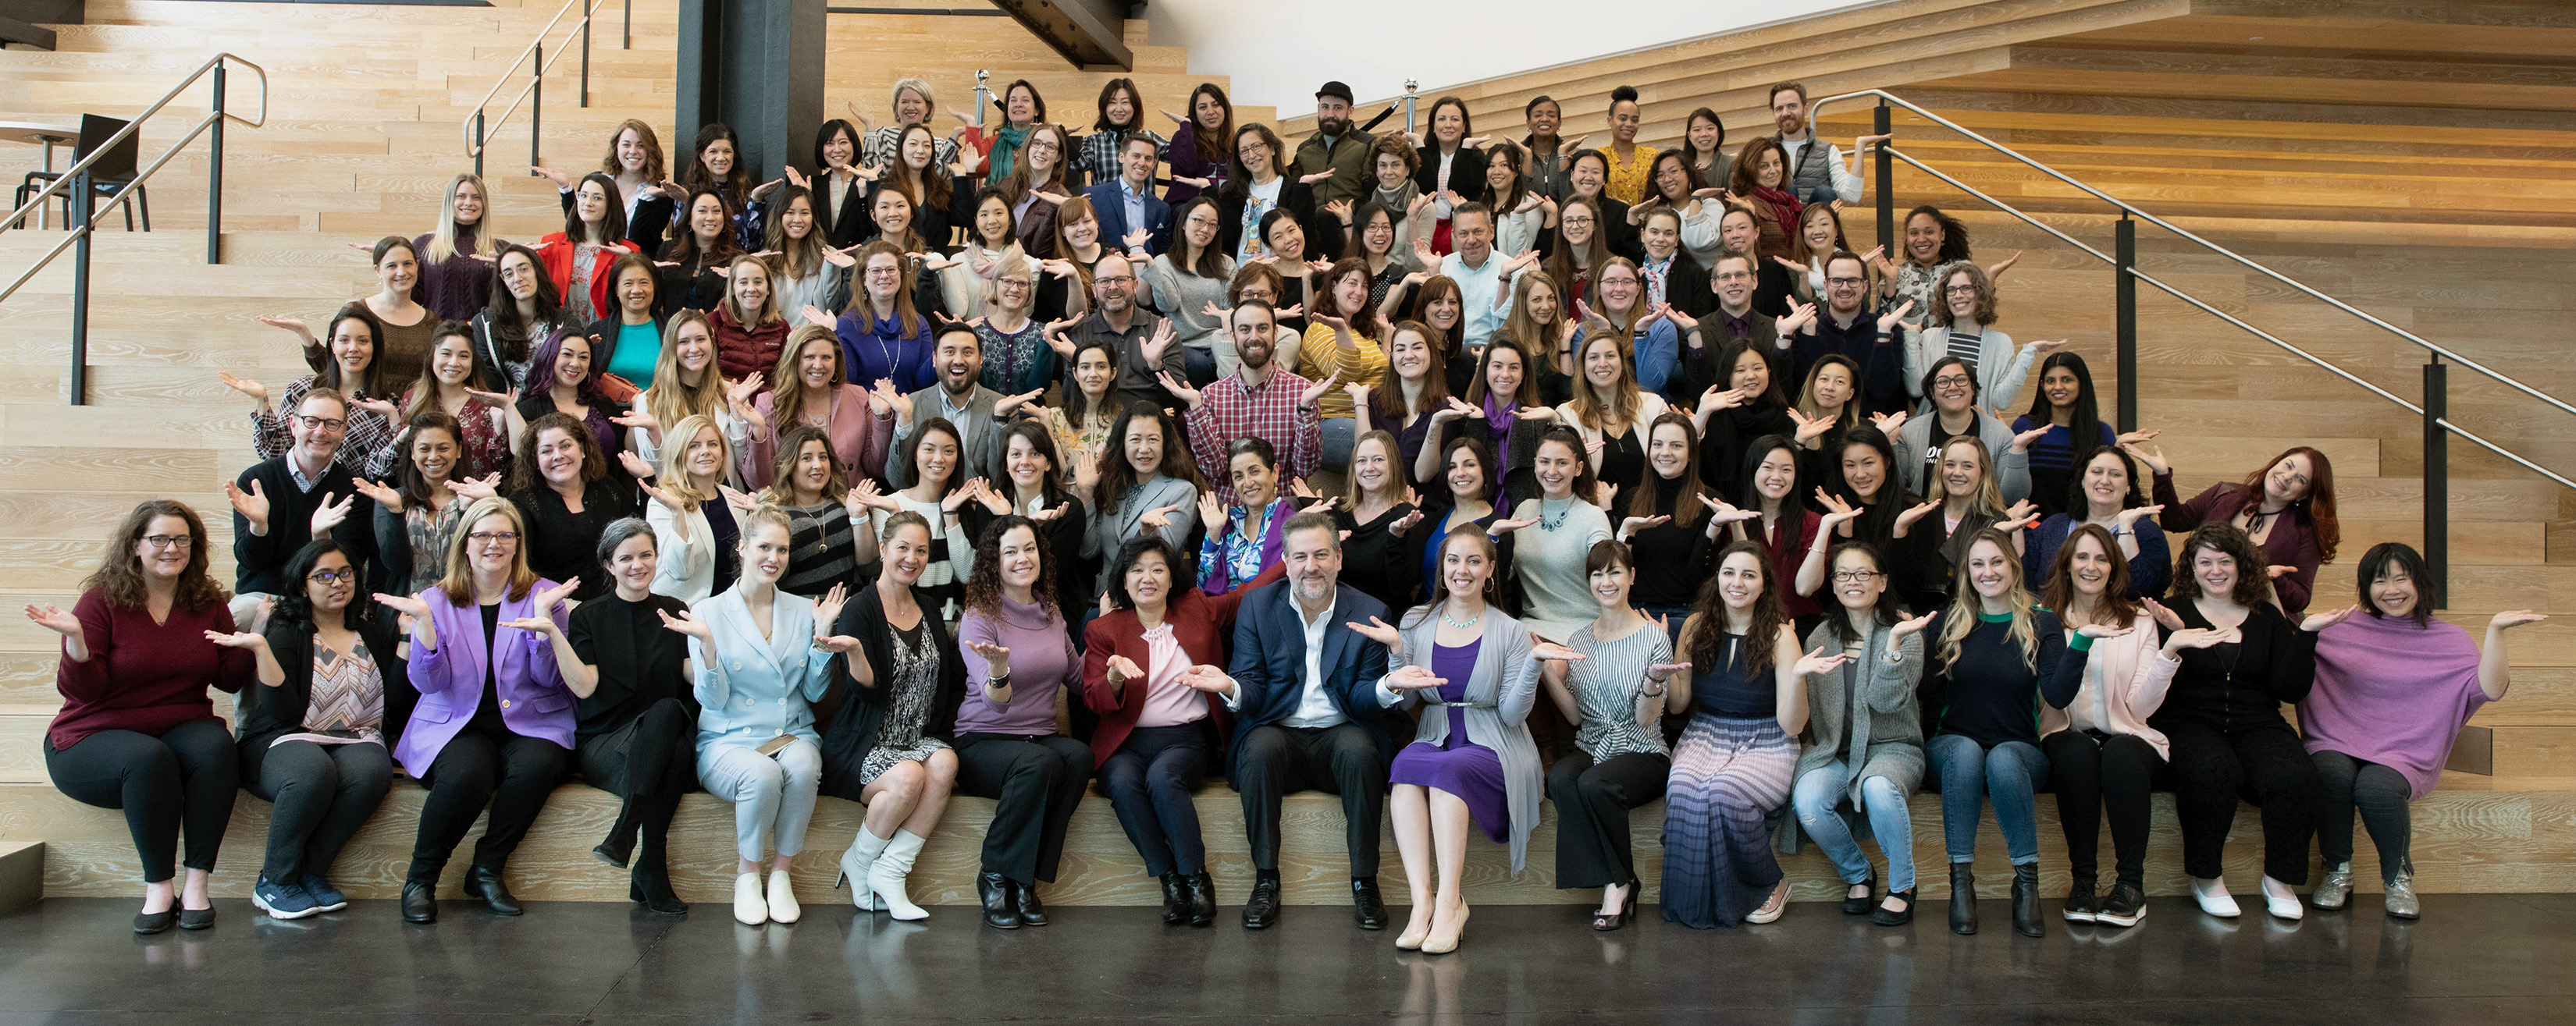 2019 Dolby International Womens Day Group Shot